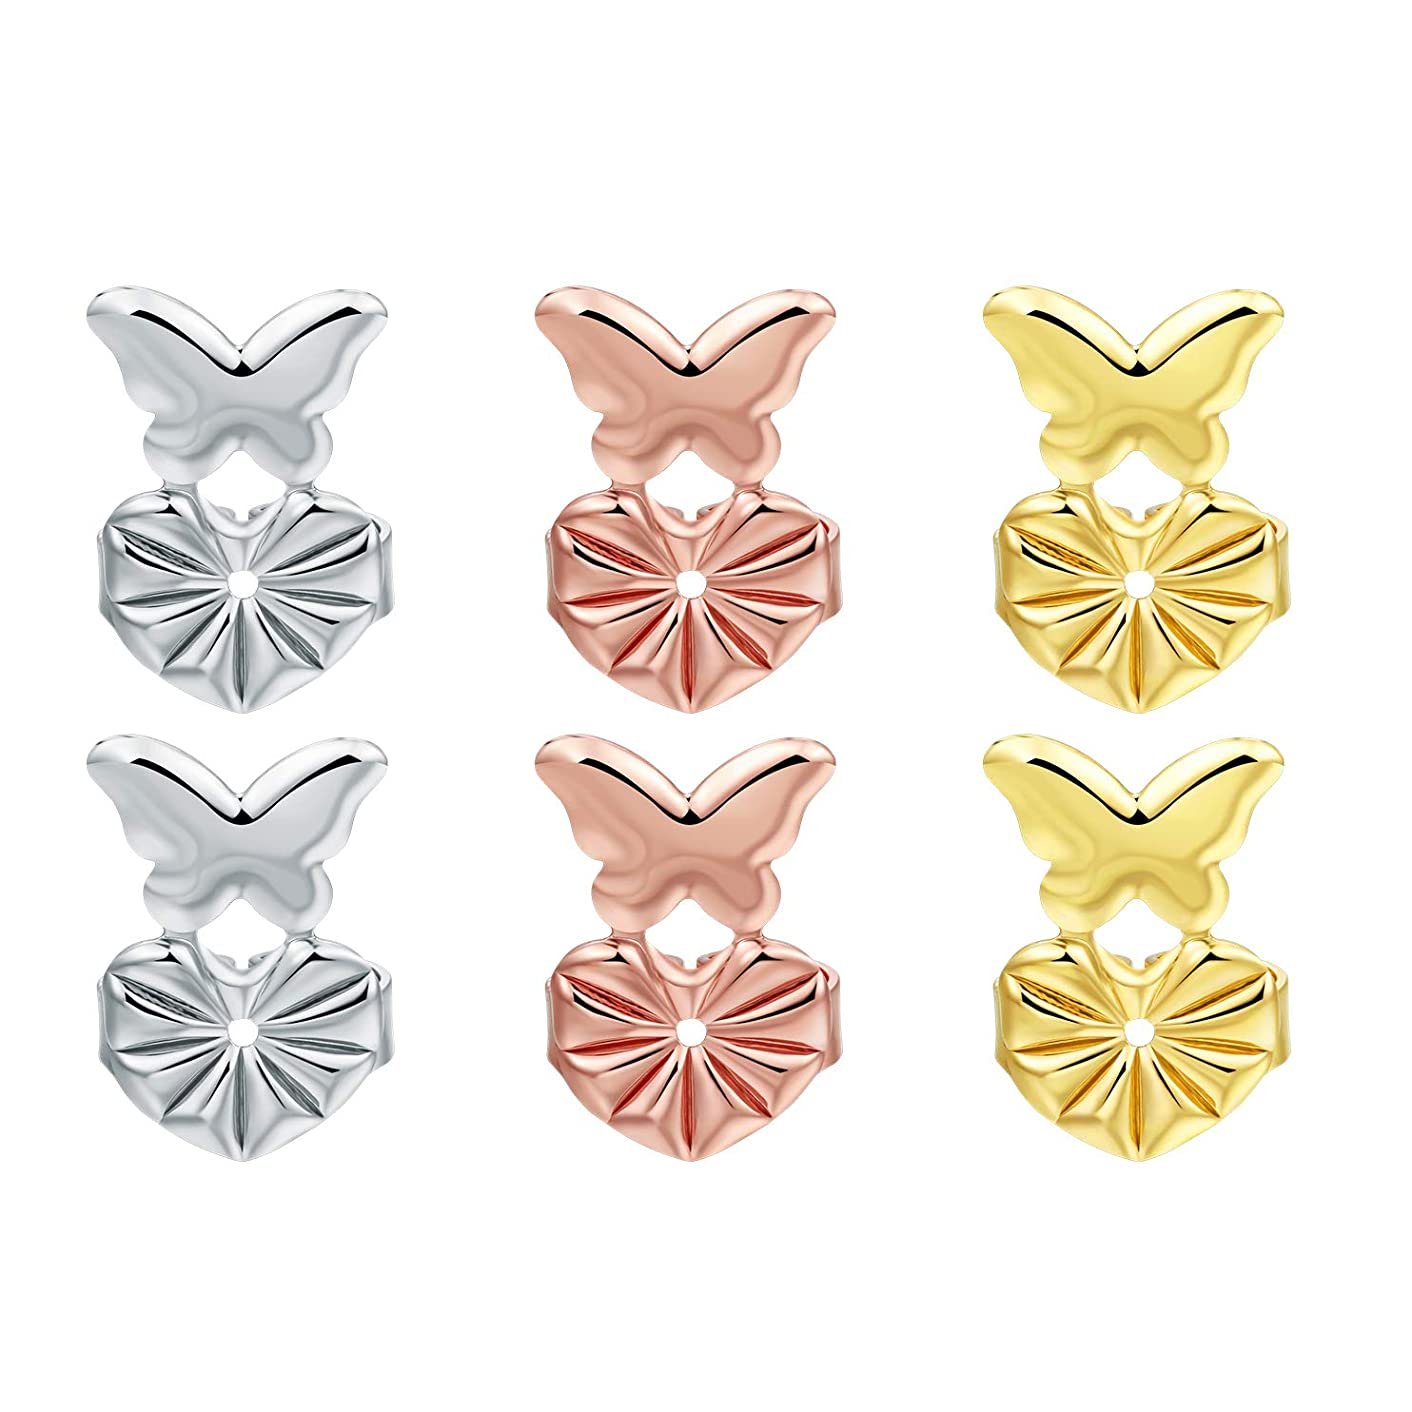 Earring Backs Adjustable Earring Lifts Butterfly Shape Safety Earring Backs Gift for Women(Silver/Gold/Rose Gold)